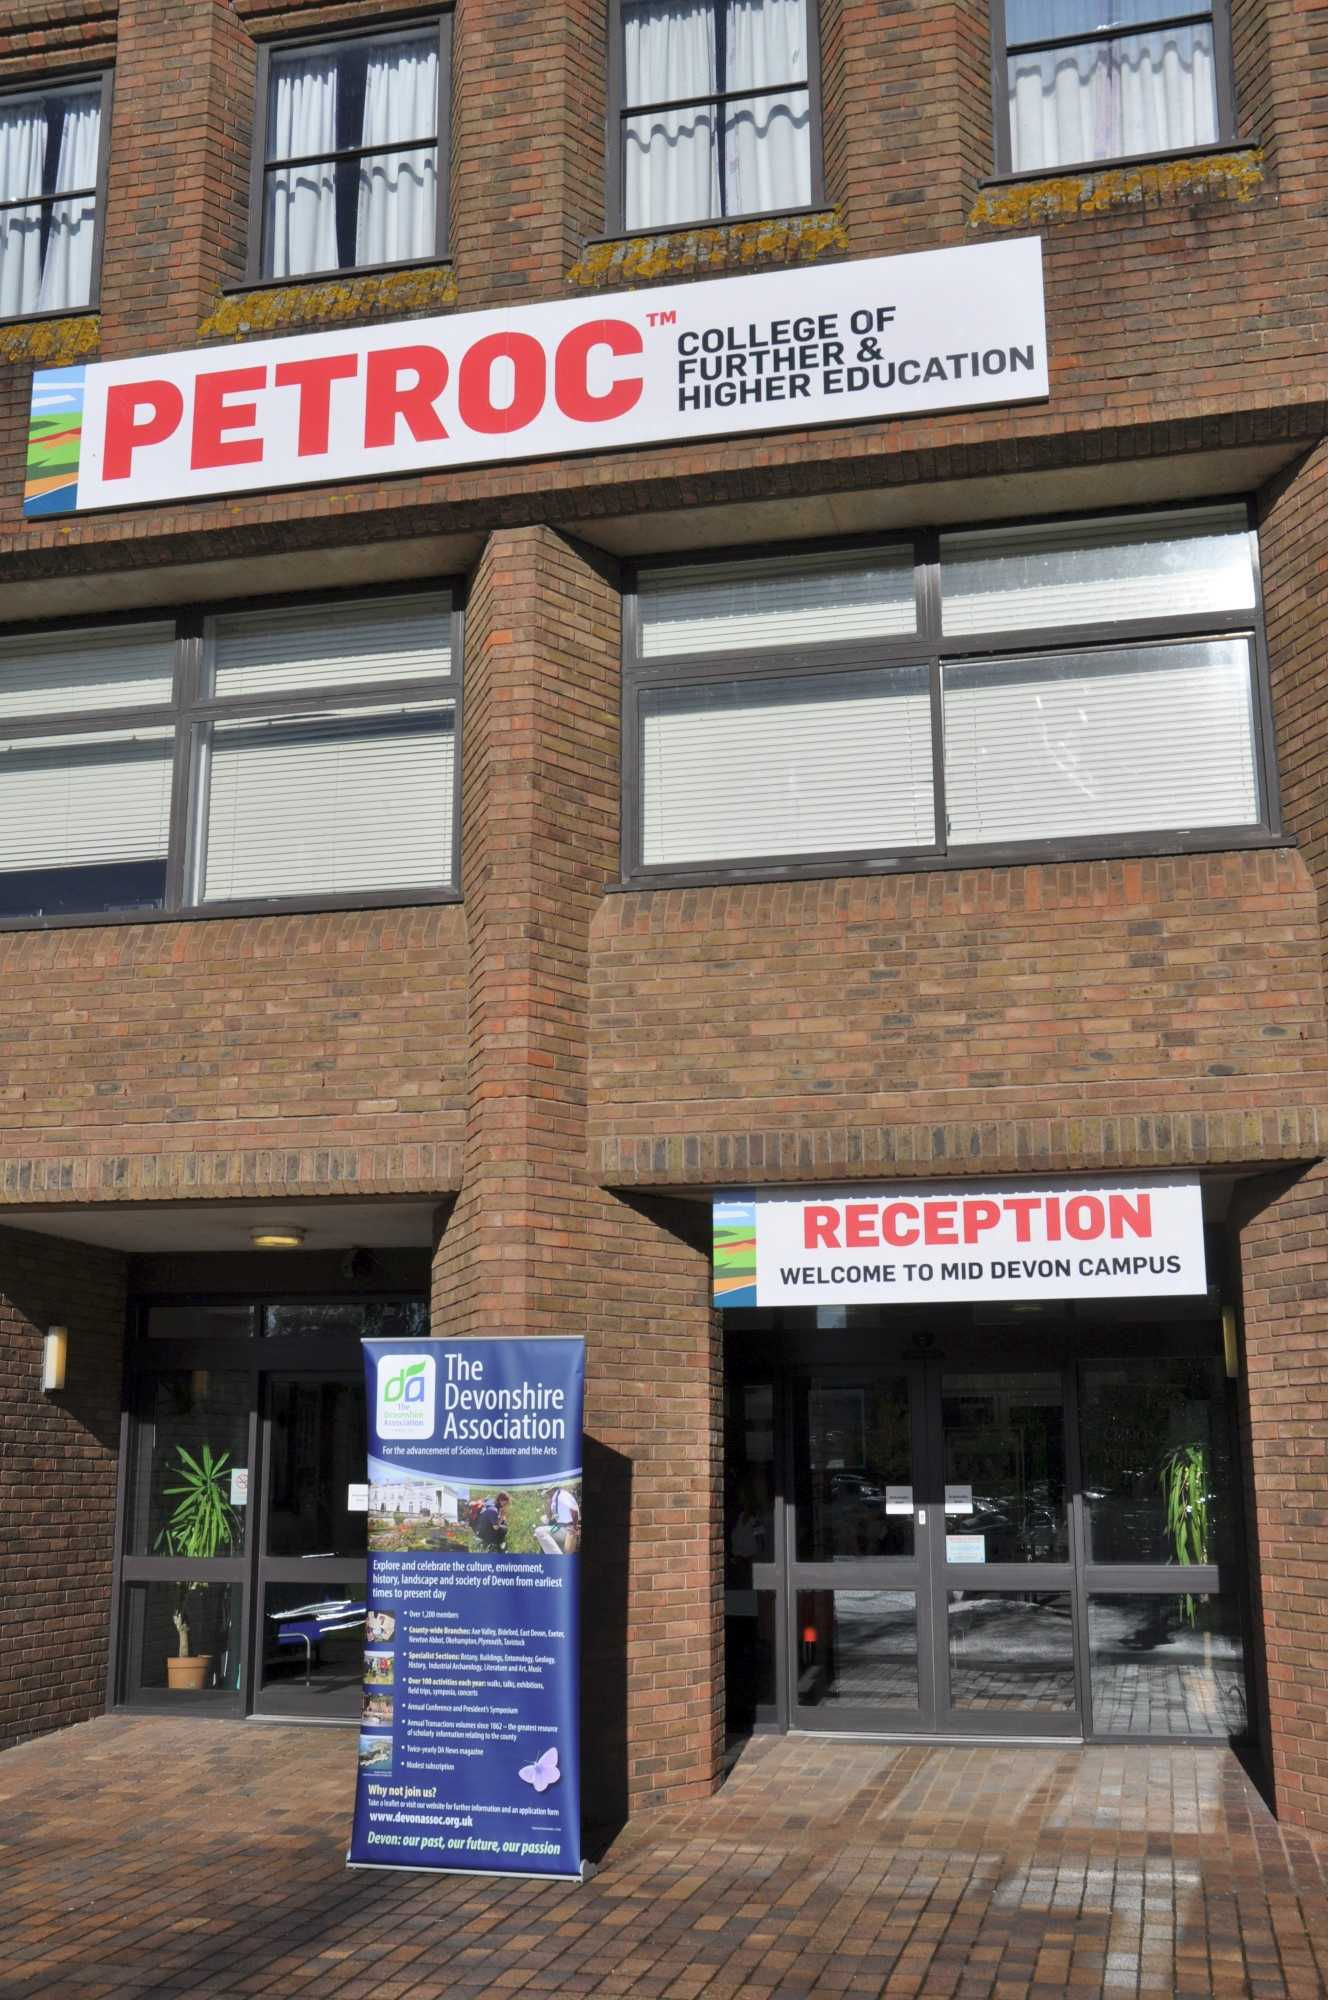 Main entrance to Petroc College of further & higher education, Tiverton